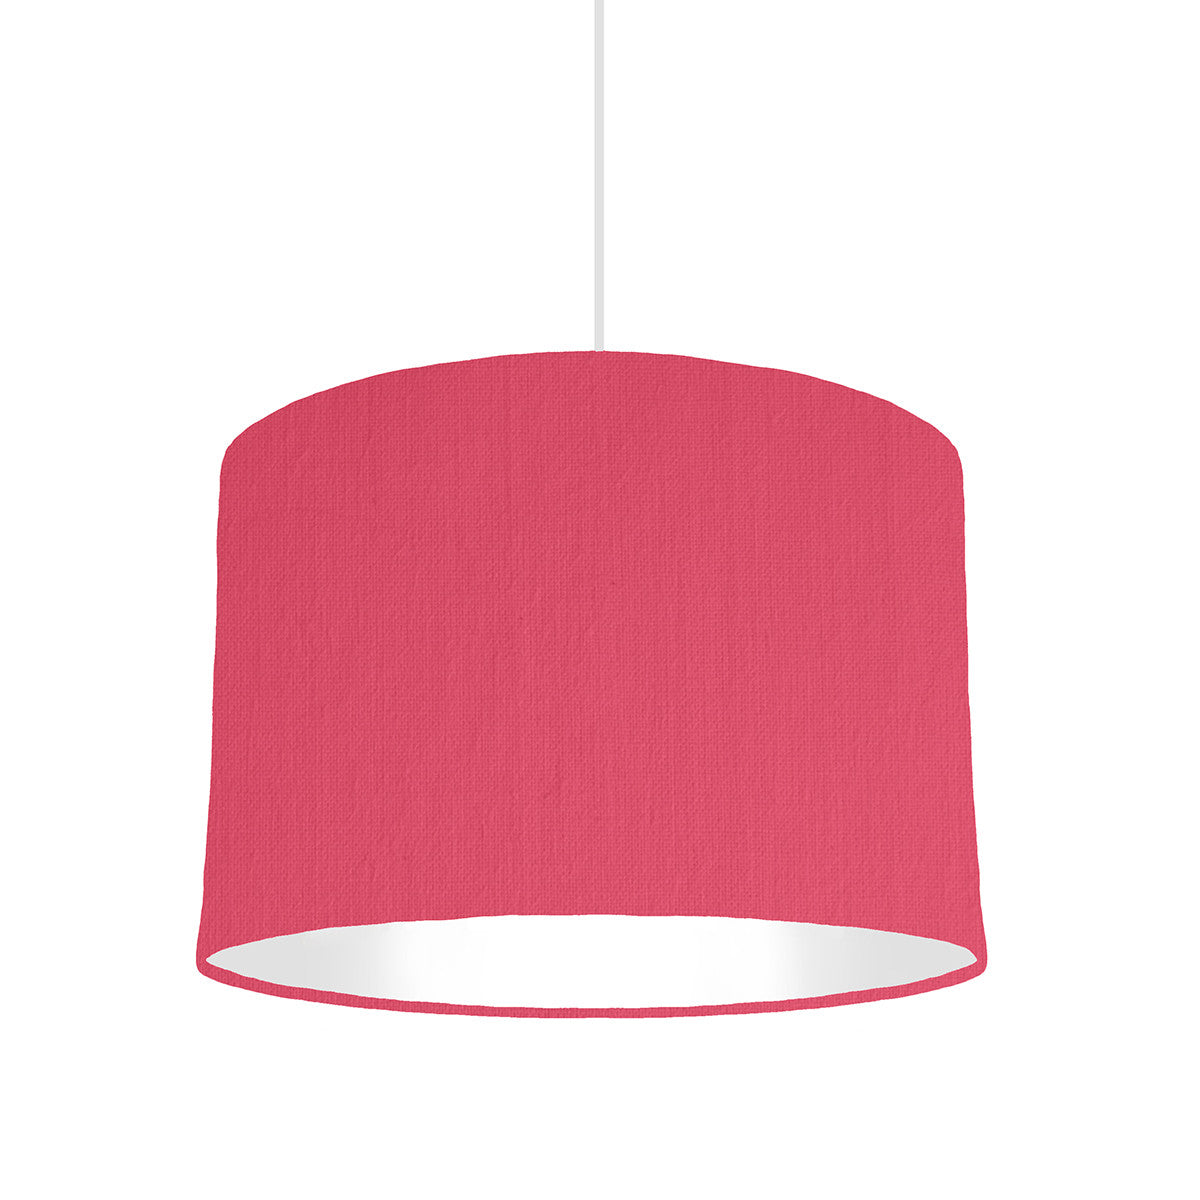 Cerise Pink Lampshade With White Lining, 30 cm wide